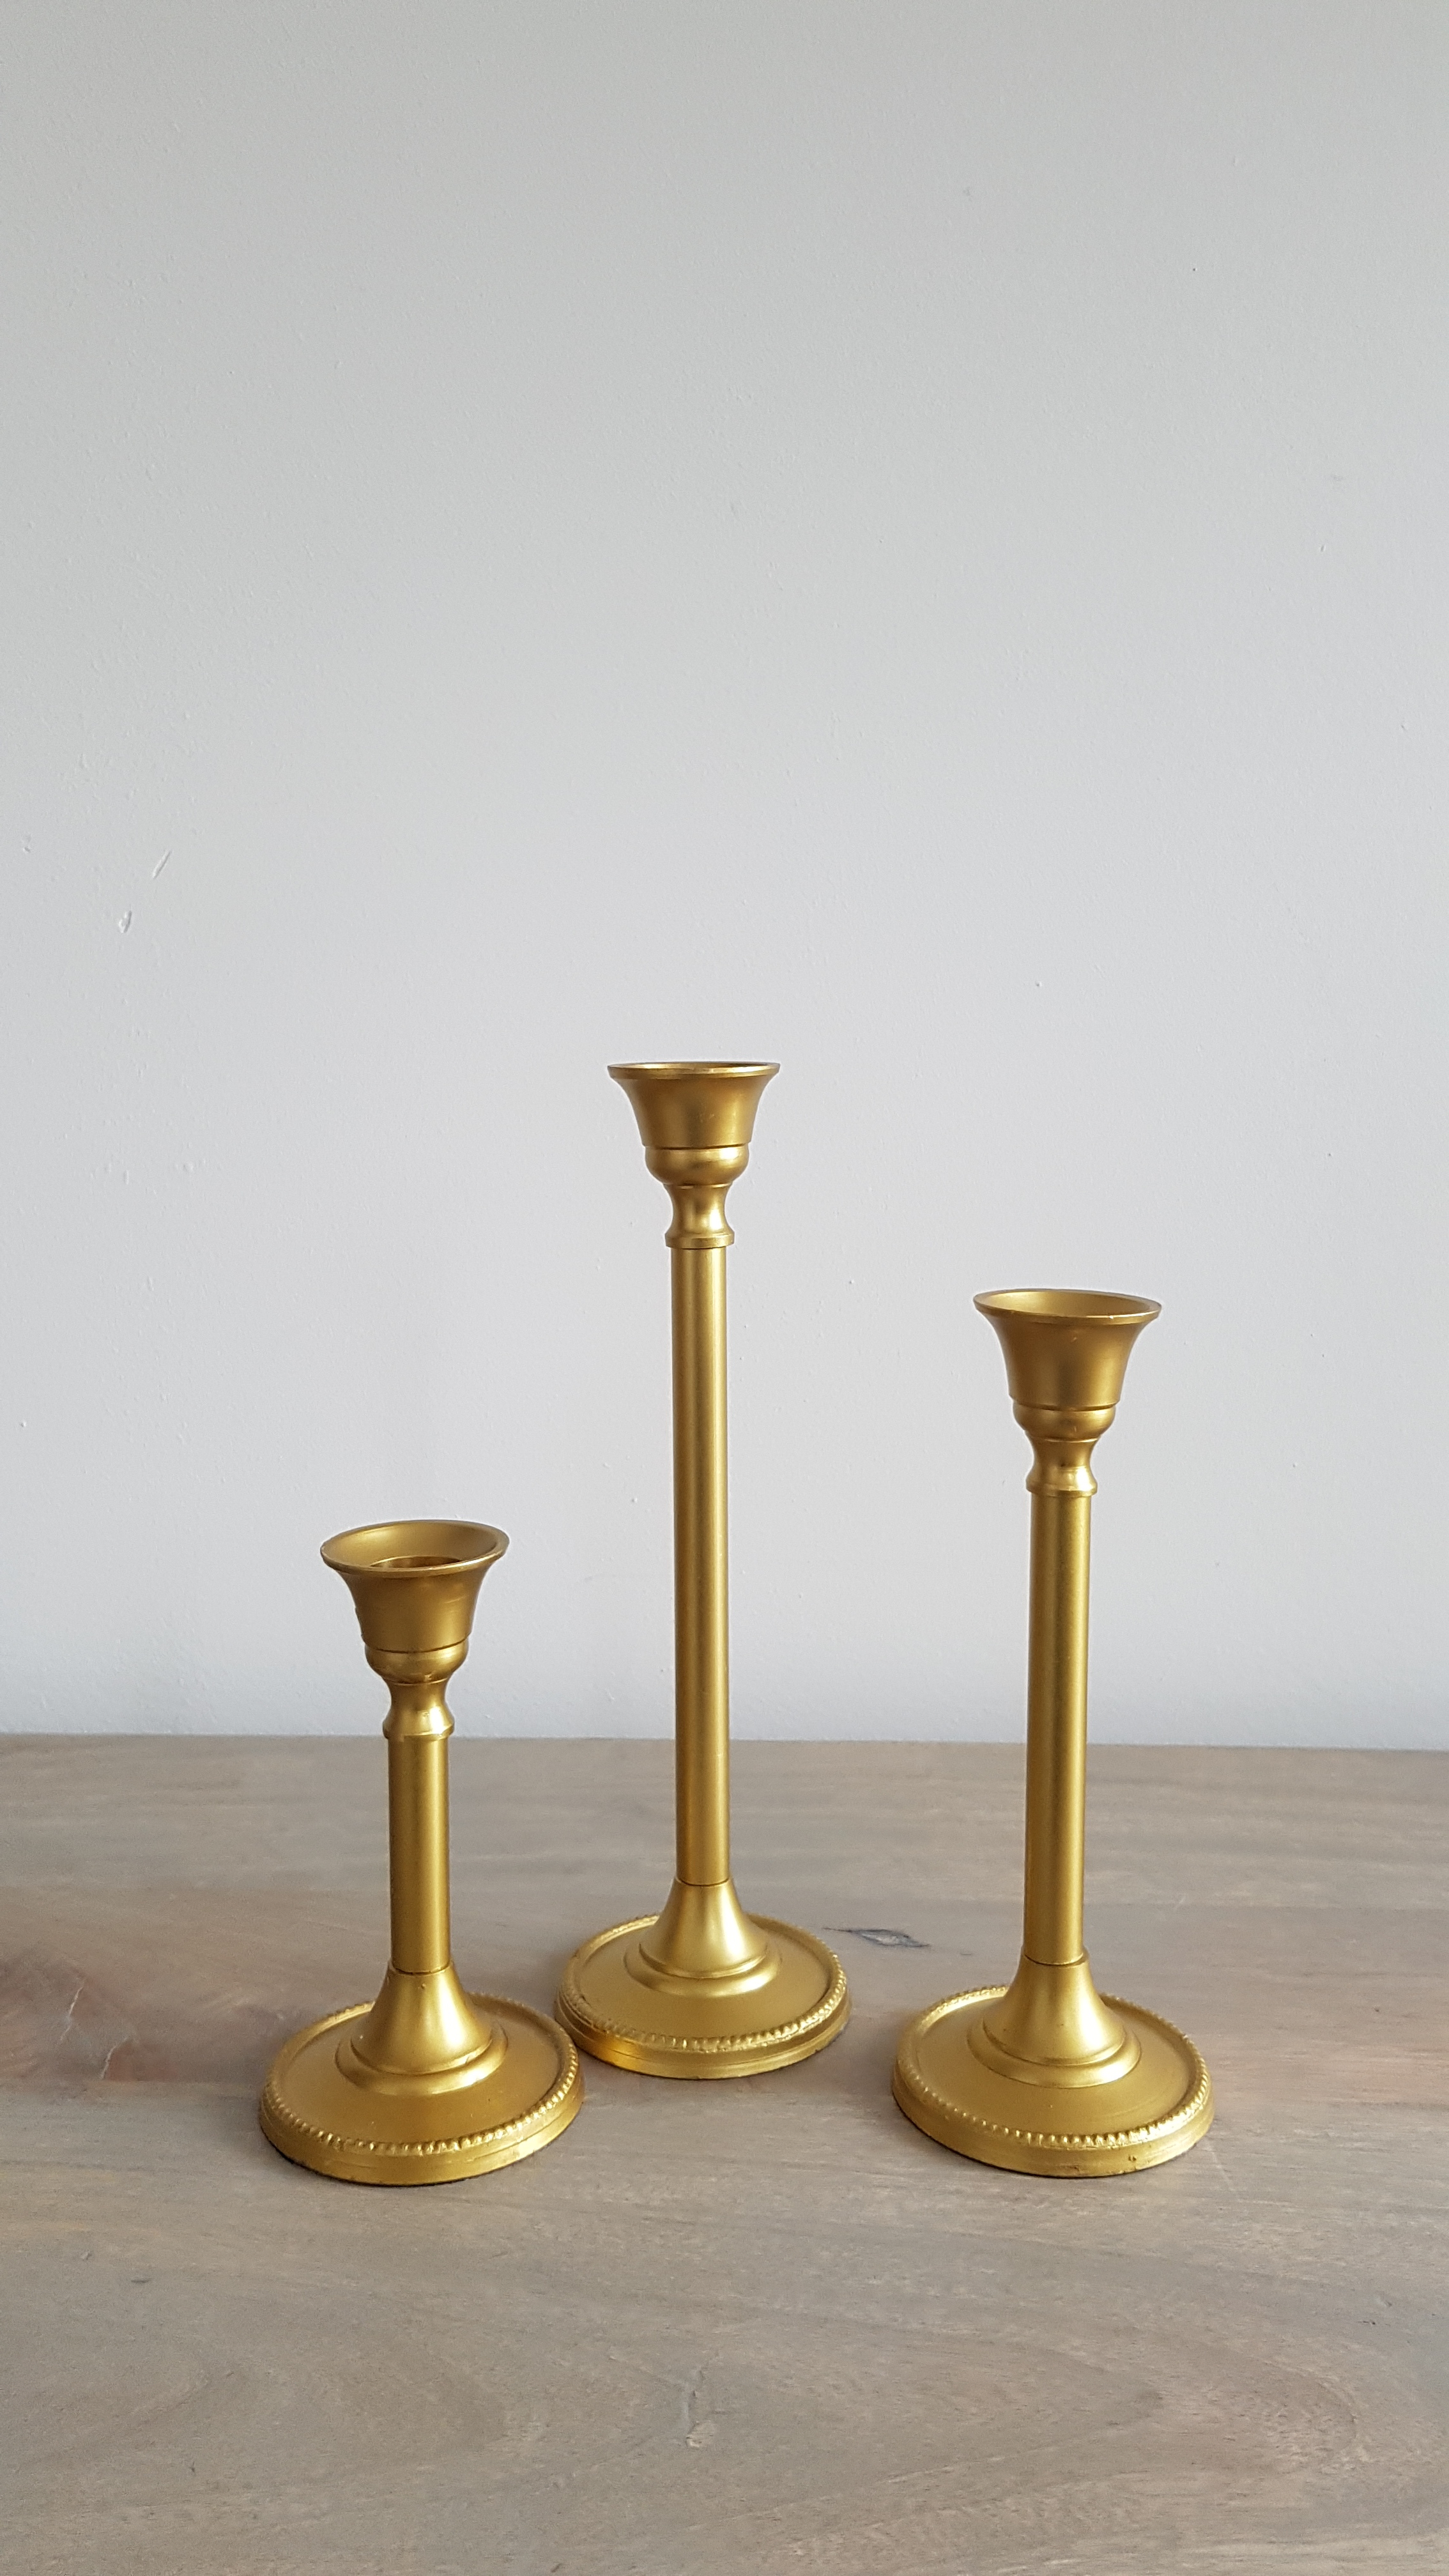 Set of 3 Gold Candlestick Set - $8 a set   Qty: 17 sets (candles not included)